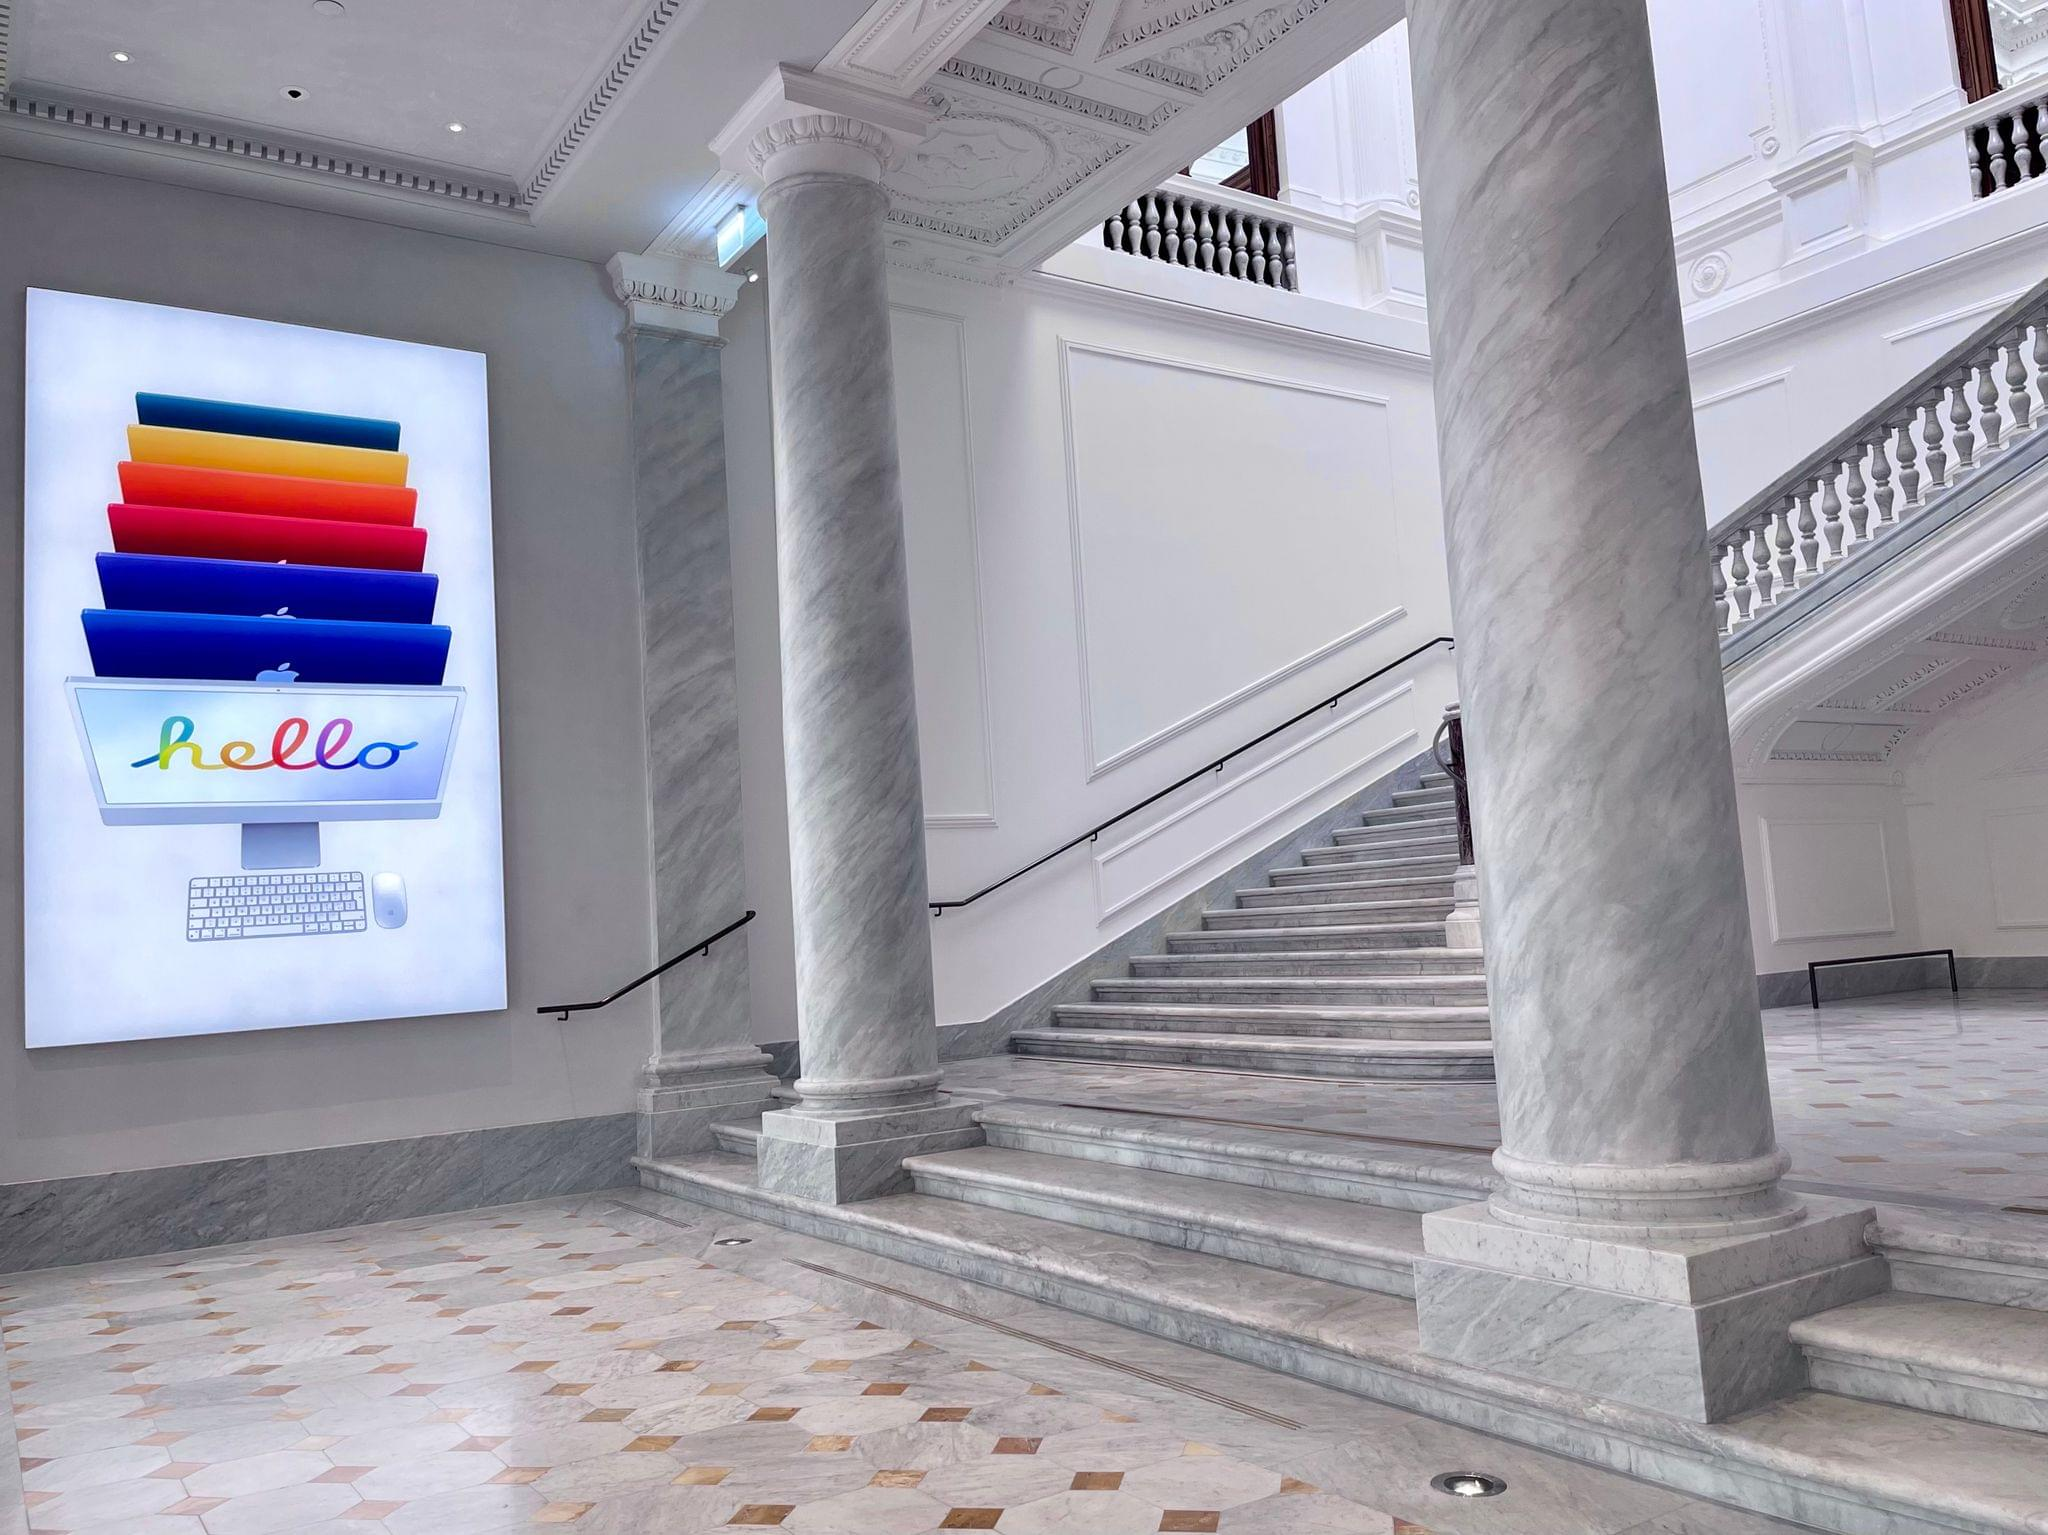 The grand staircase at Apple's new store.